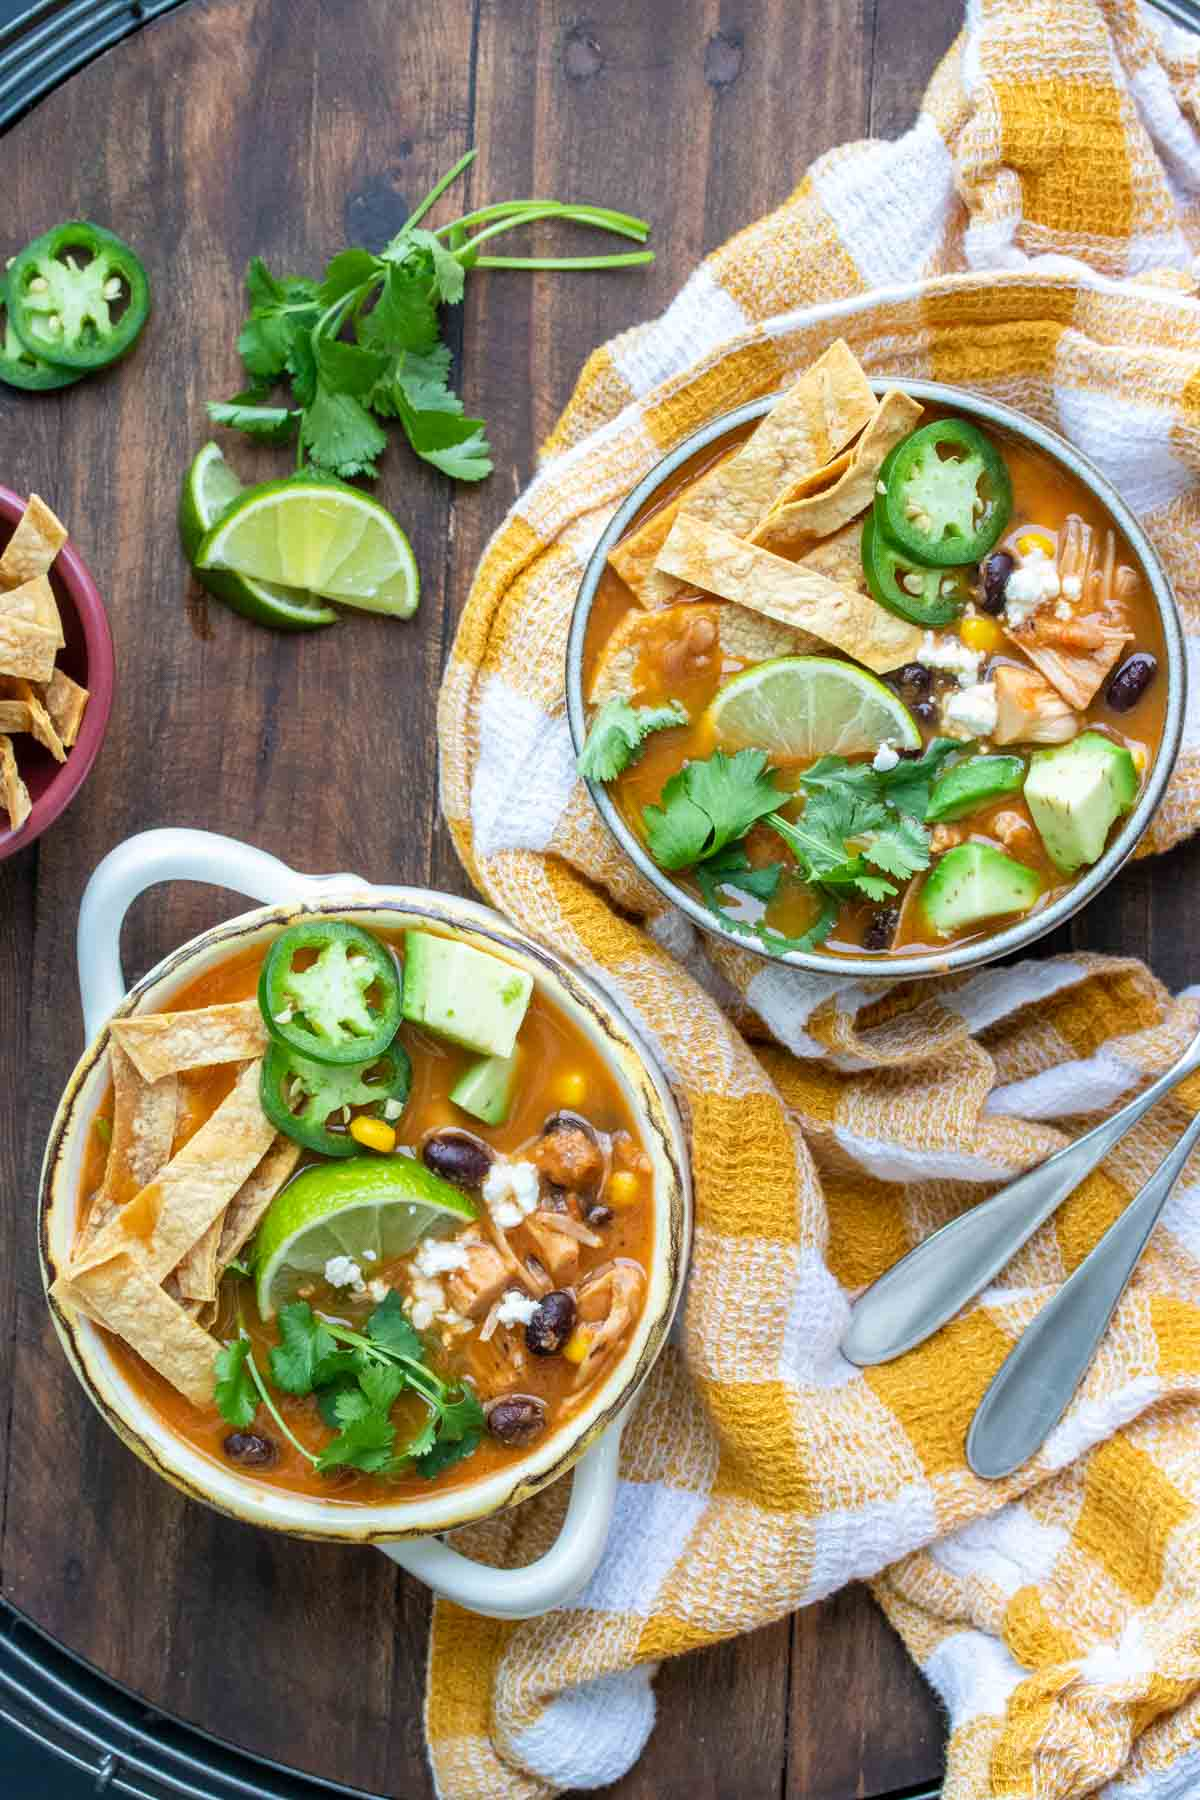 Two bowls filled with tortilla soup and loaded with toppings